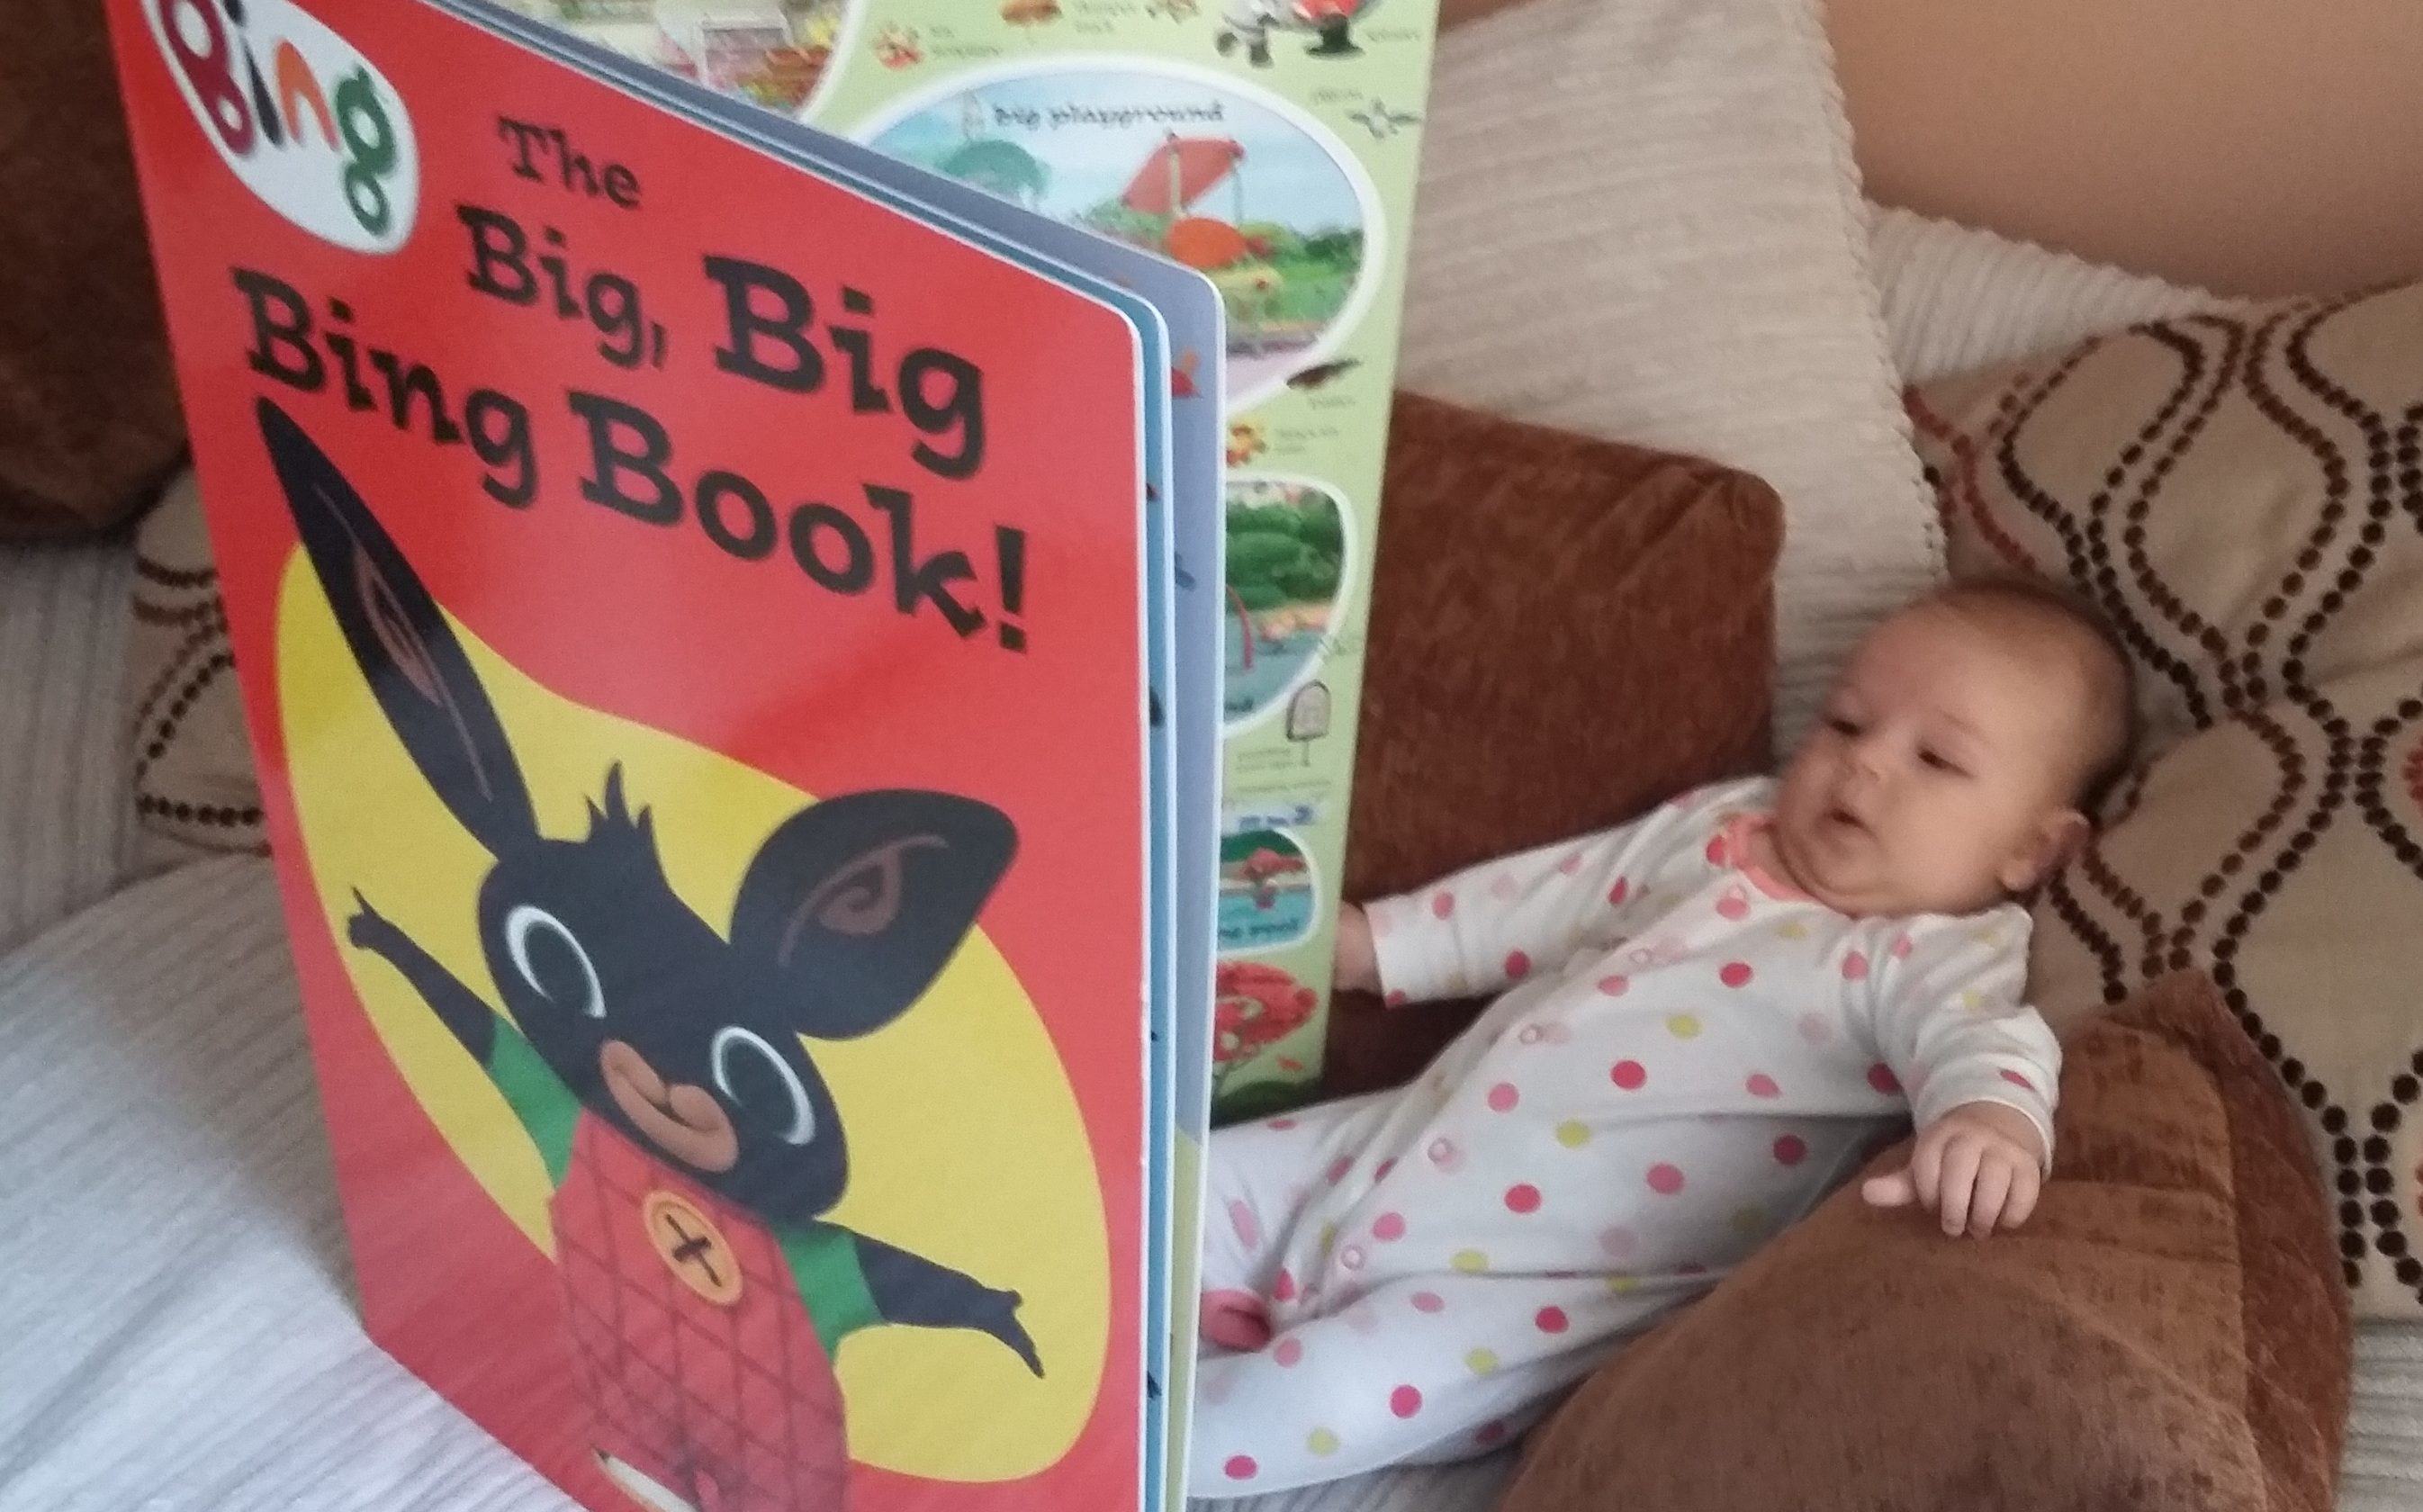 12 weeks old and already our Genius Child likes relaxing in the chair and a reading a big book